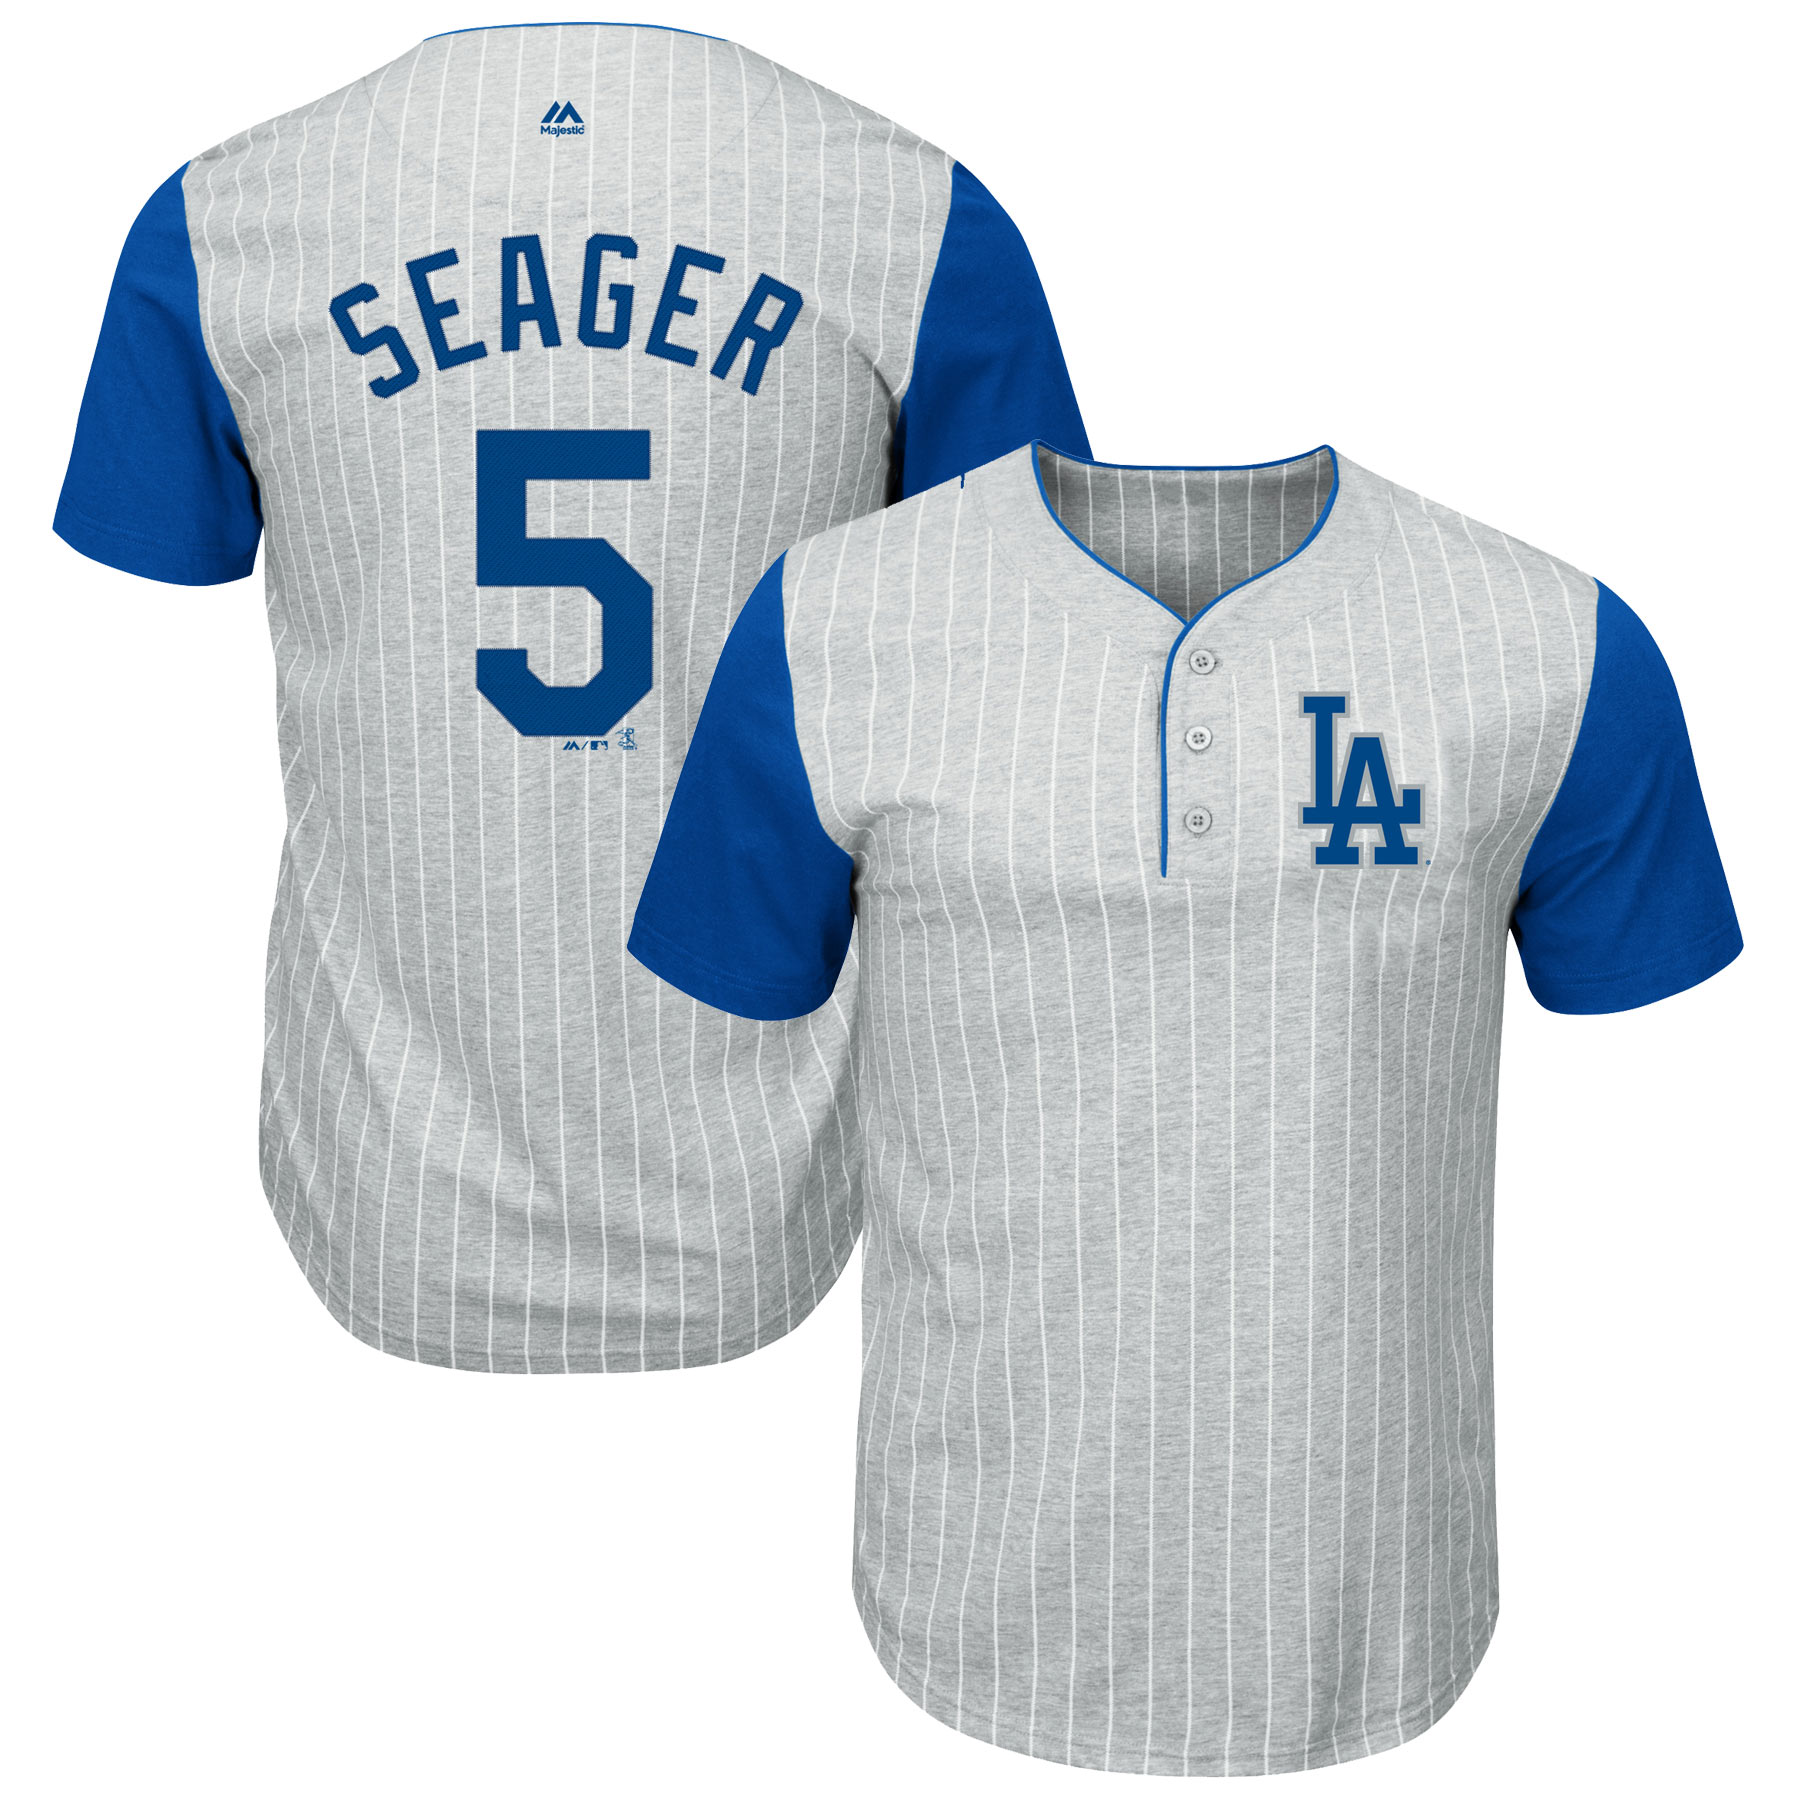 Corey Seager Los Angeles Dodgers Majestic Big & Tall Pinstripe Player T-Shirt - Gray/Royal